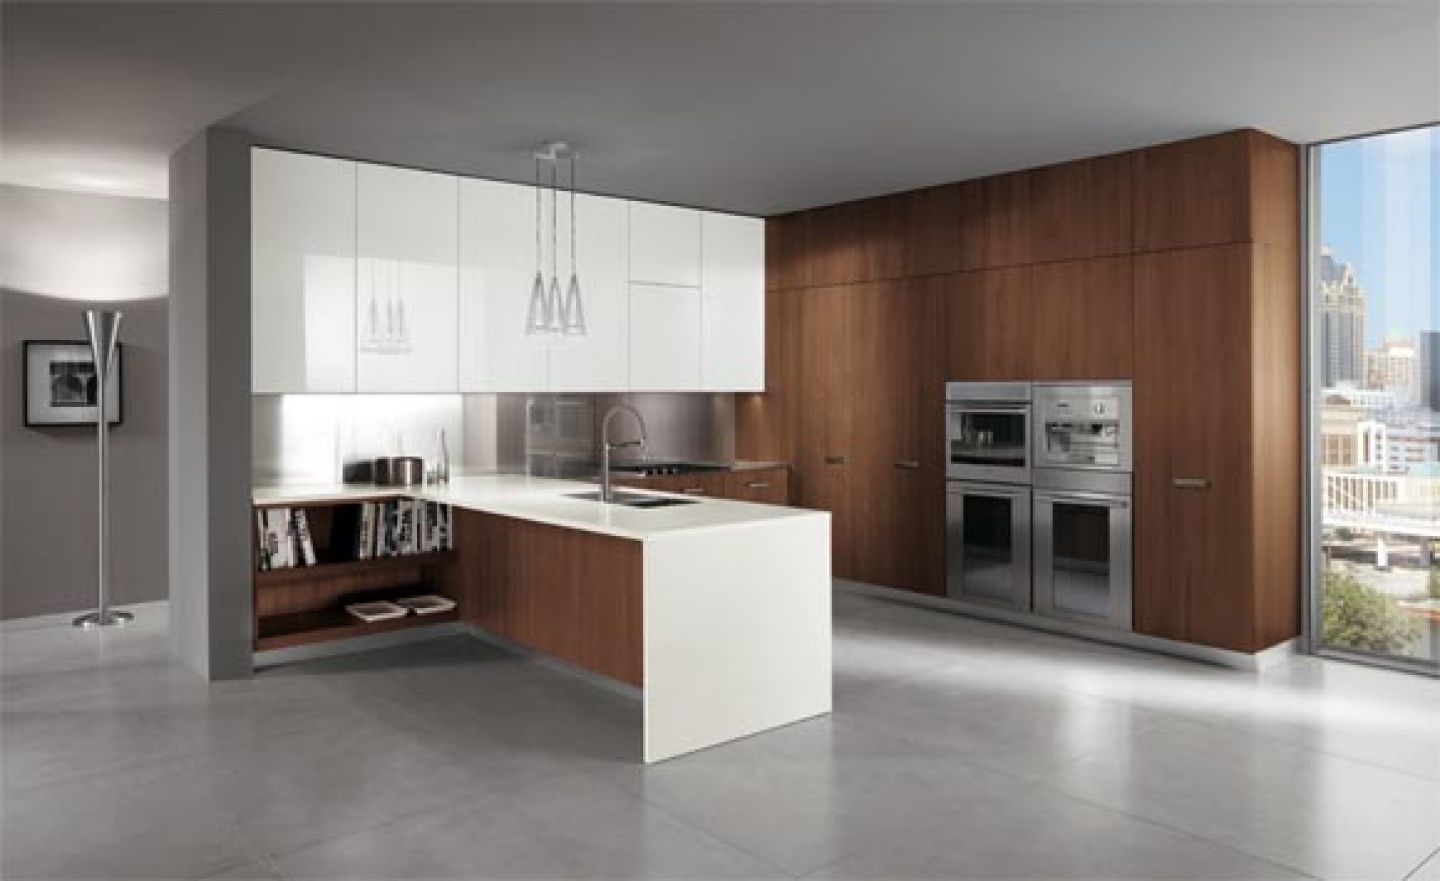 Brands of kitchen cabinets - Italian Kitchen Cabinets Brands